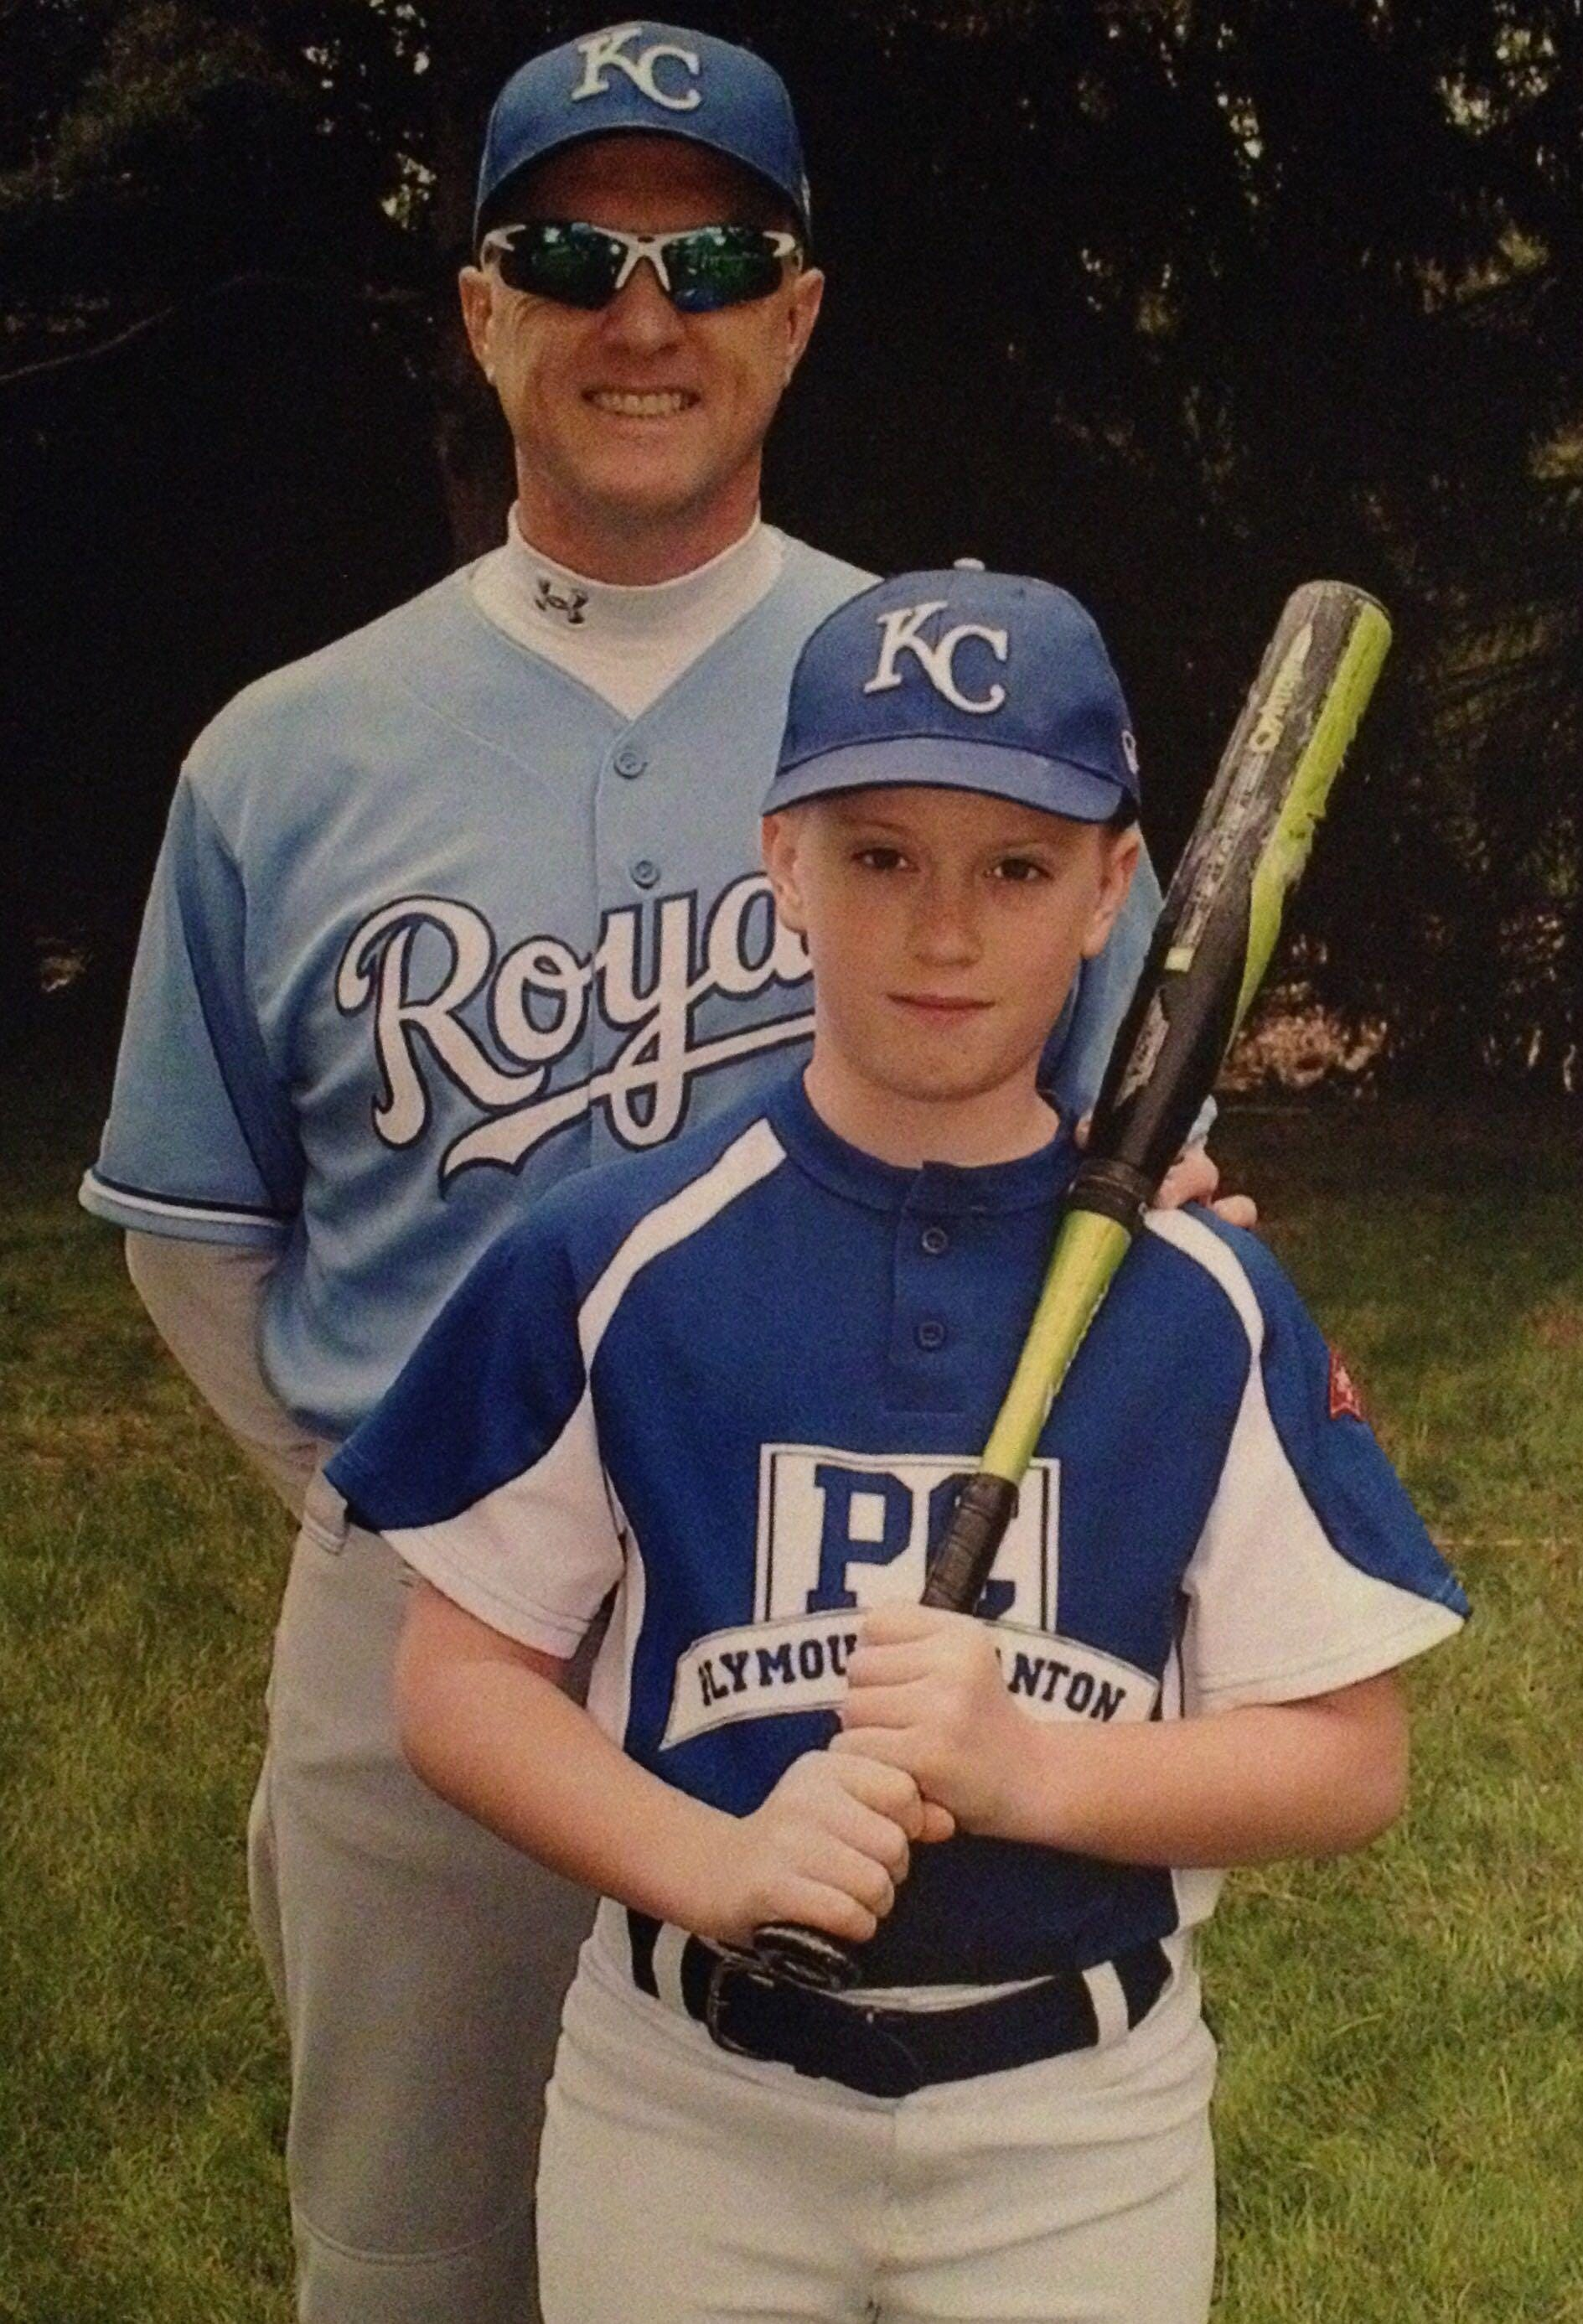 new pcll president wants more kids playing baseballfather jeff holt and son elijah teamed up in 2015 on